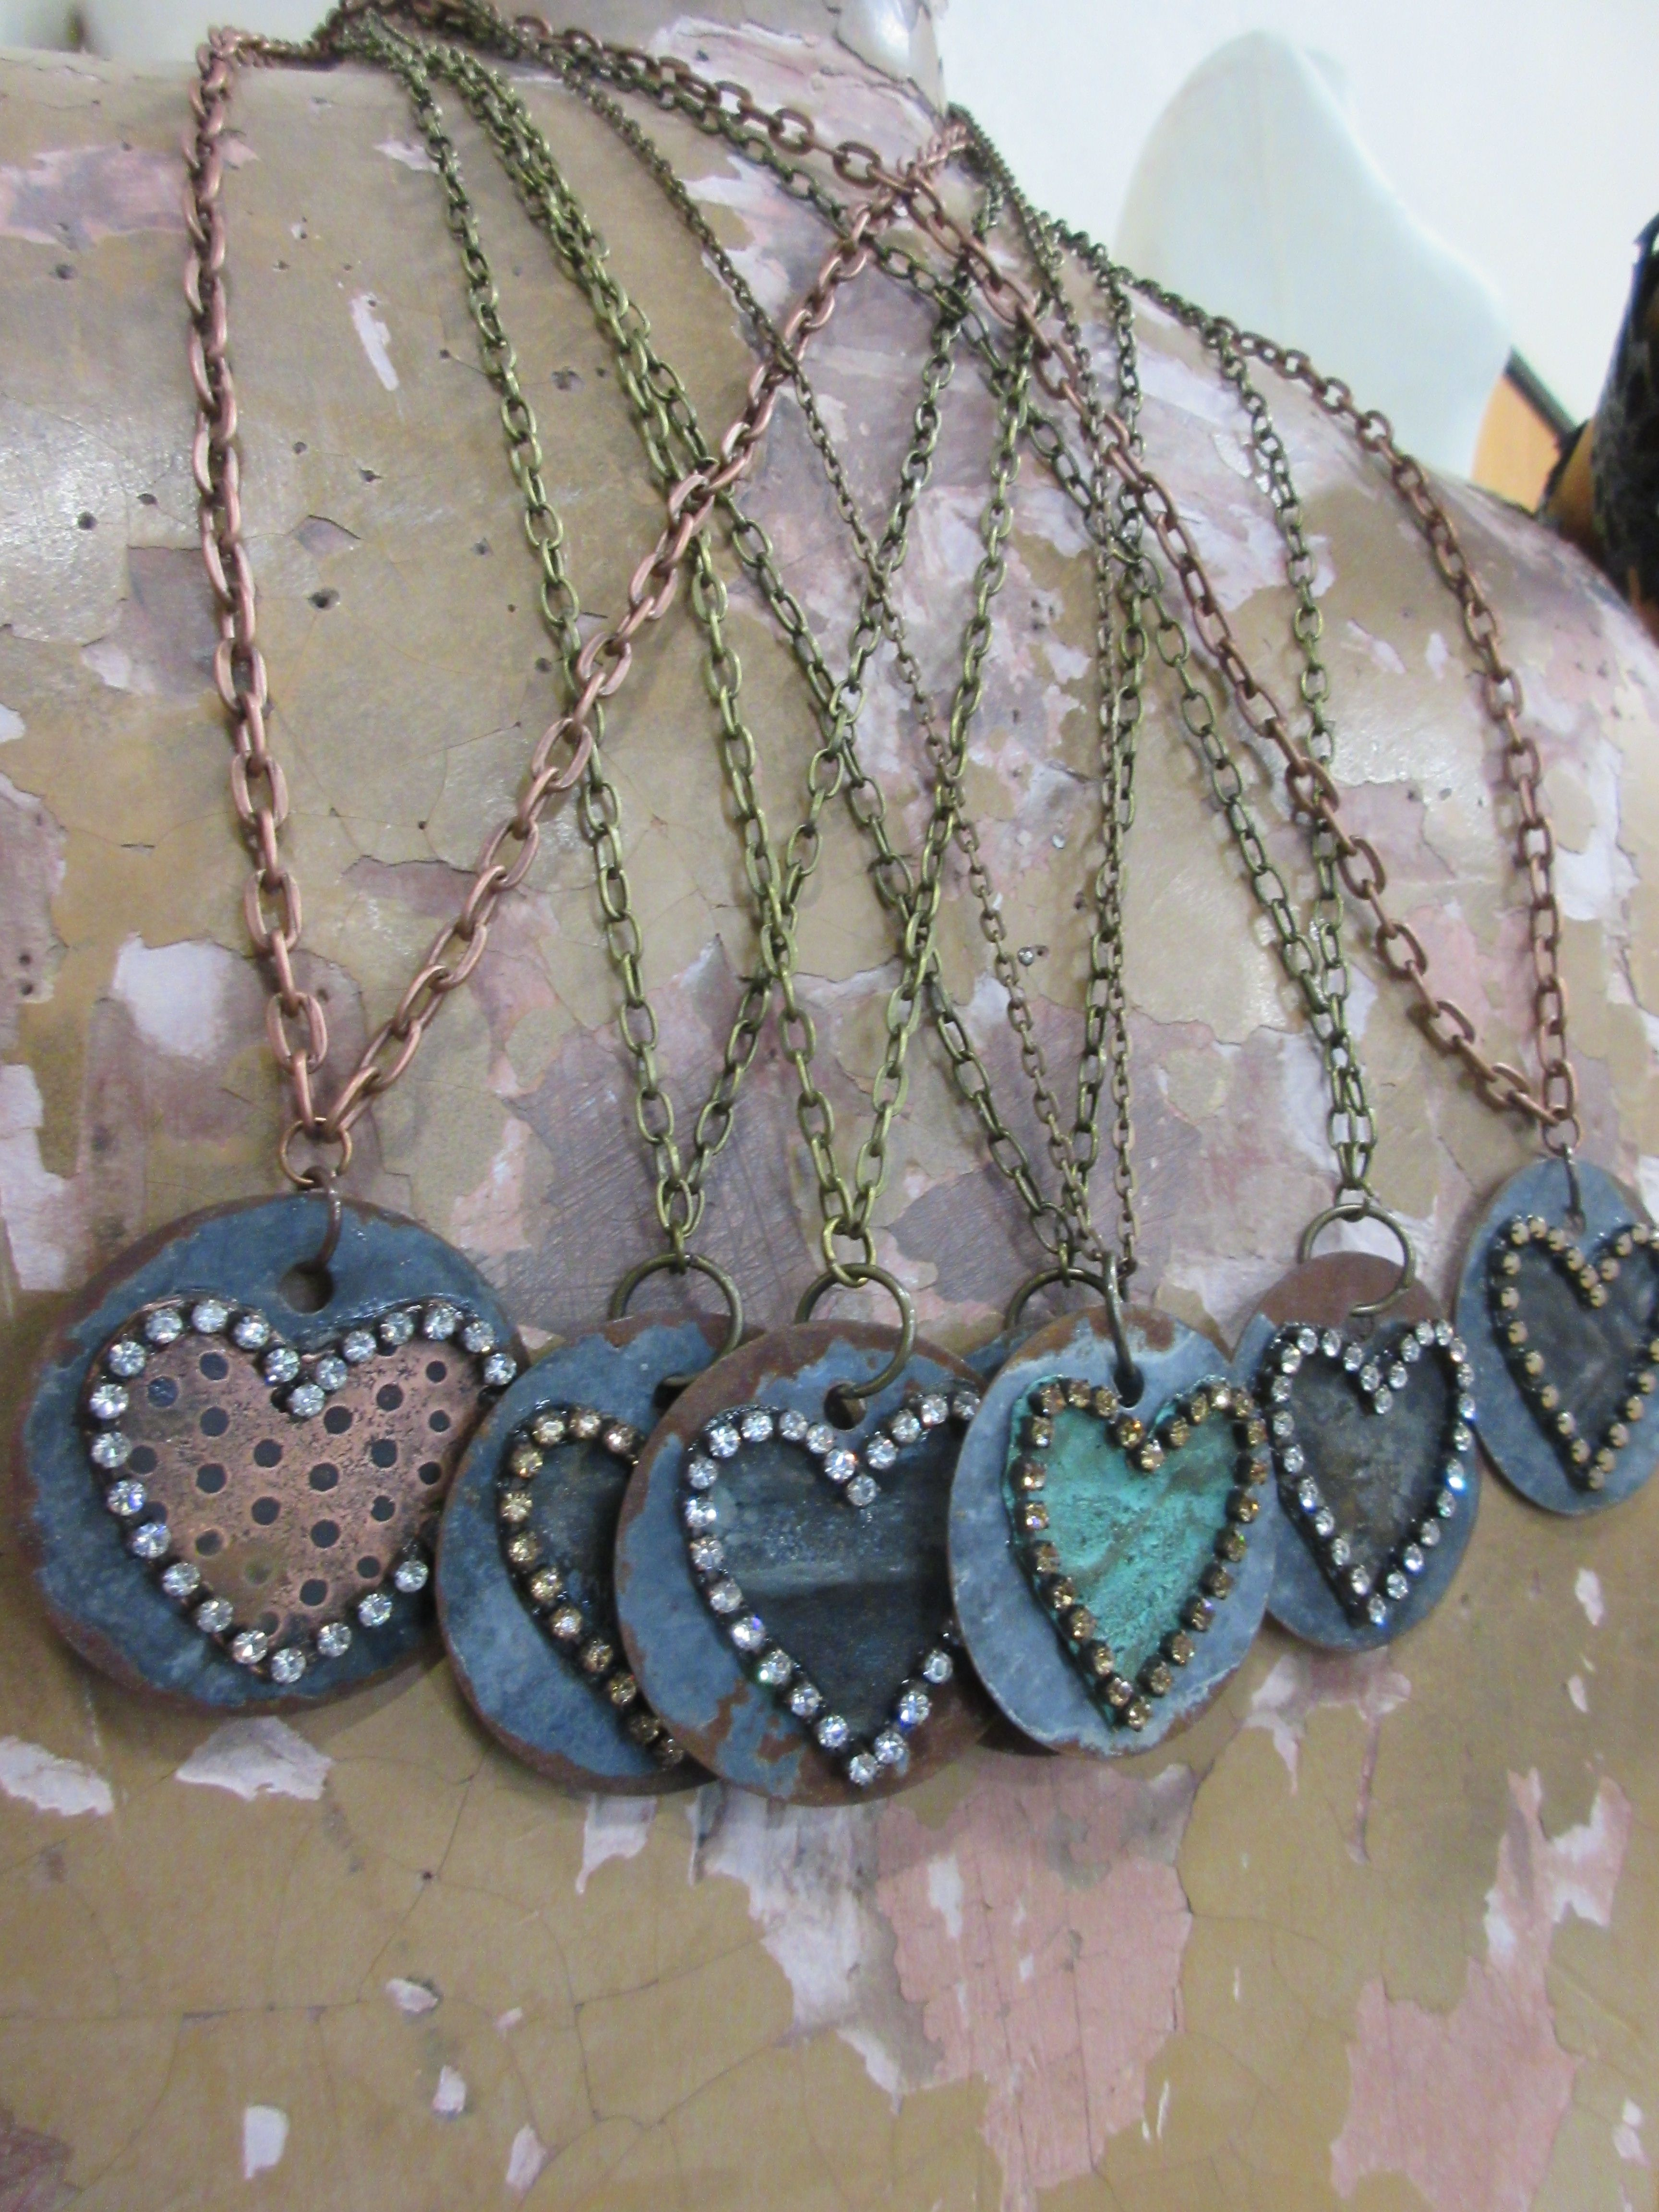 Original Tin Tile Jewelry With Bobby Boyd Designs Vintage Bliss On Galvanized Metal Discs And Etched Copper Heart Junk Jewelry Jewelry Inspiration Jewelry